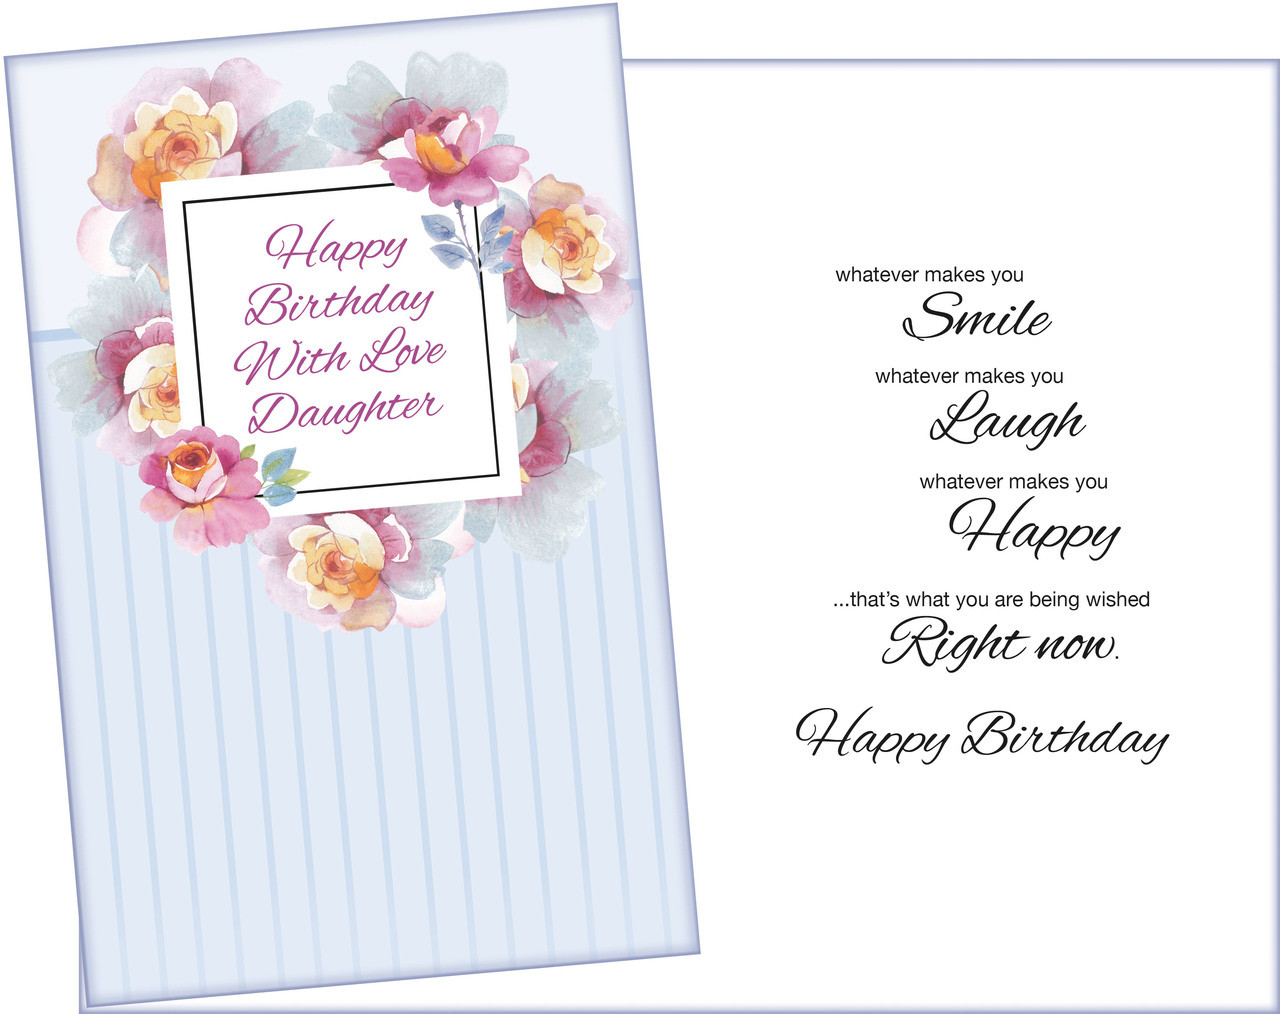 95205 Six Daughter Birthday Greeting Cards With Envelopes